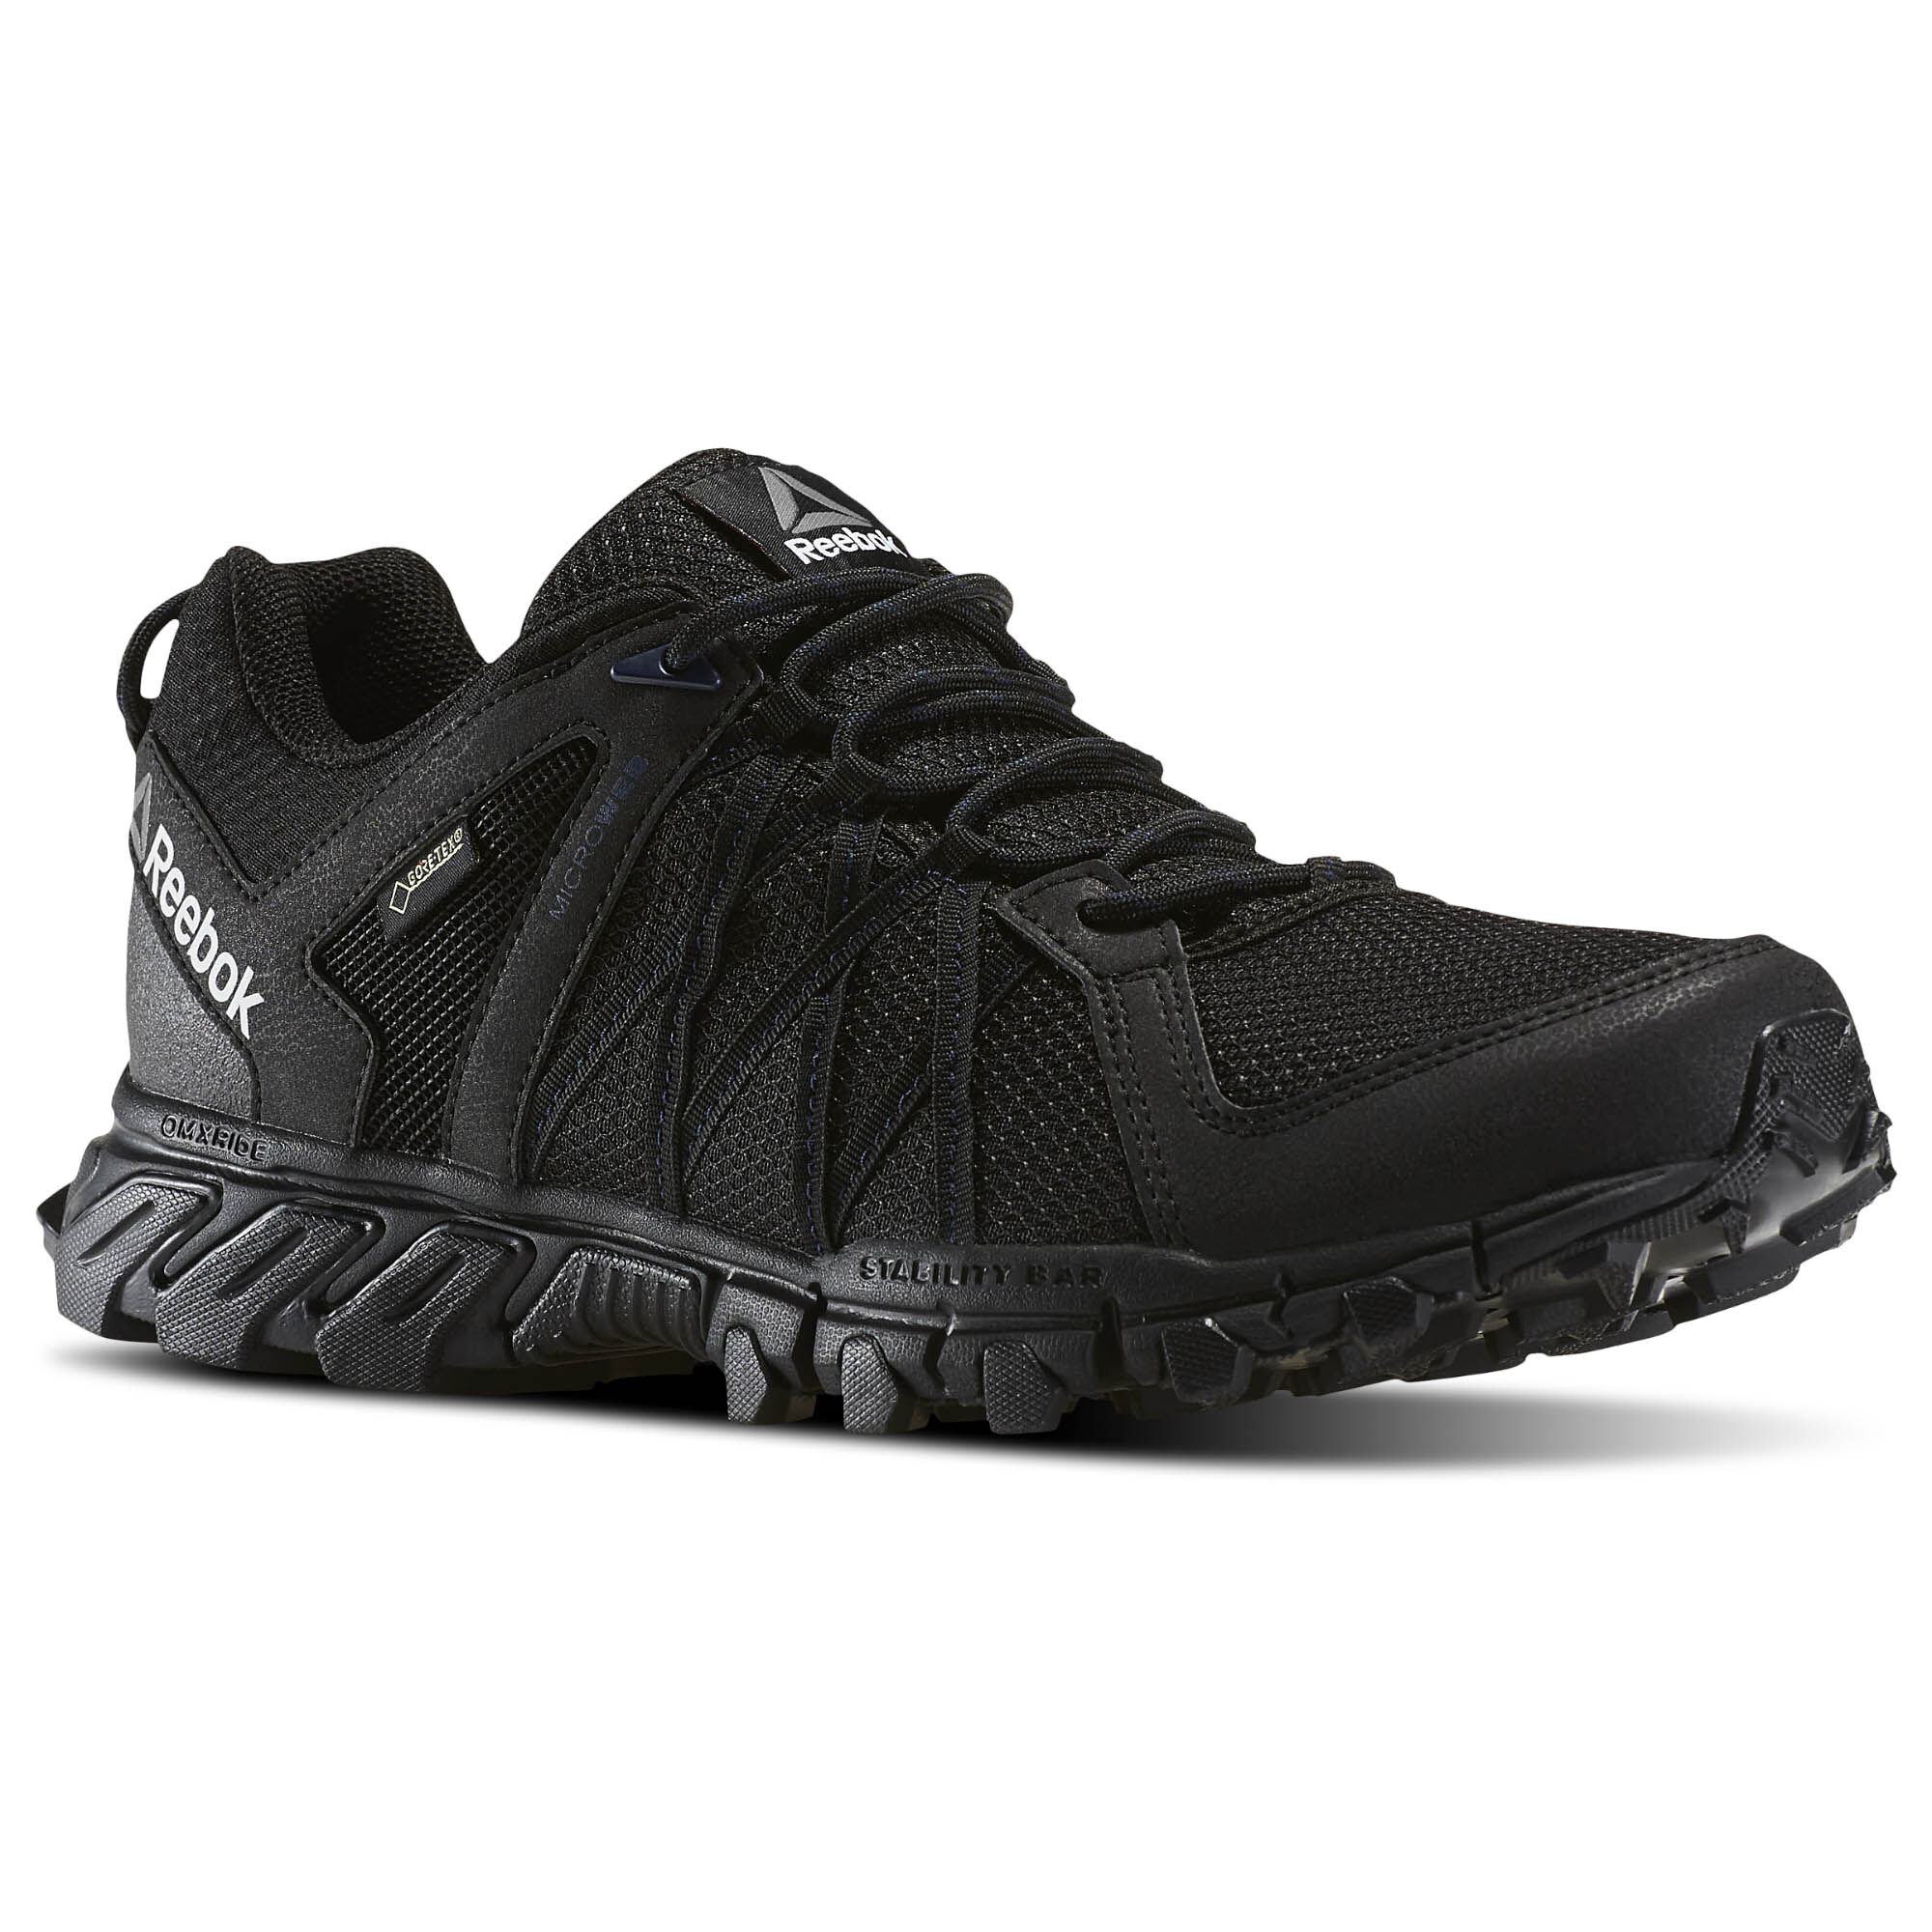 Reebok - Trailgrip RS 5.0 GTX Black/Collegiate Navy BD4155